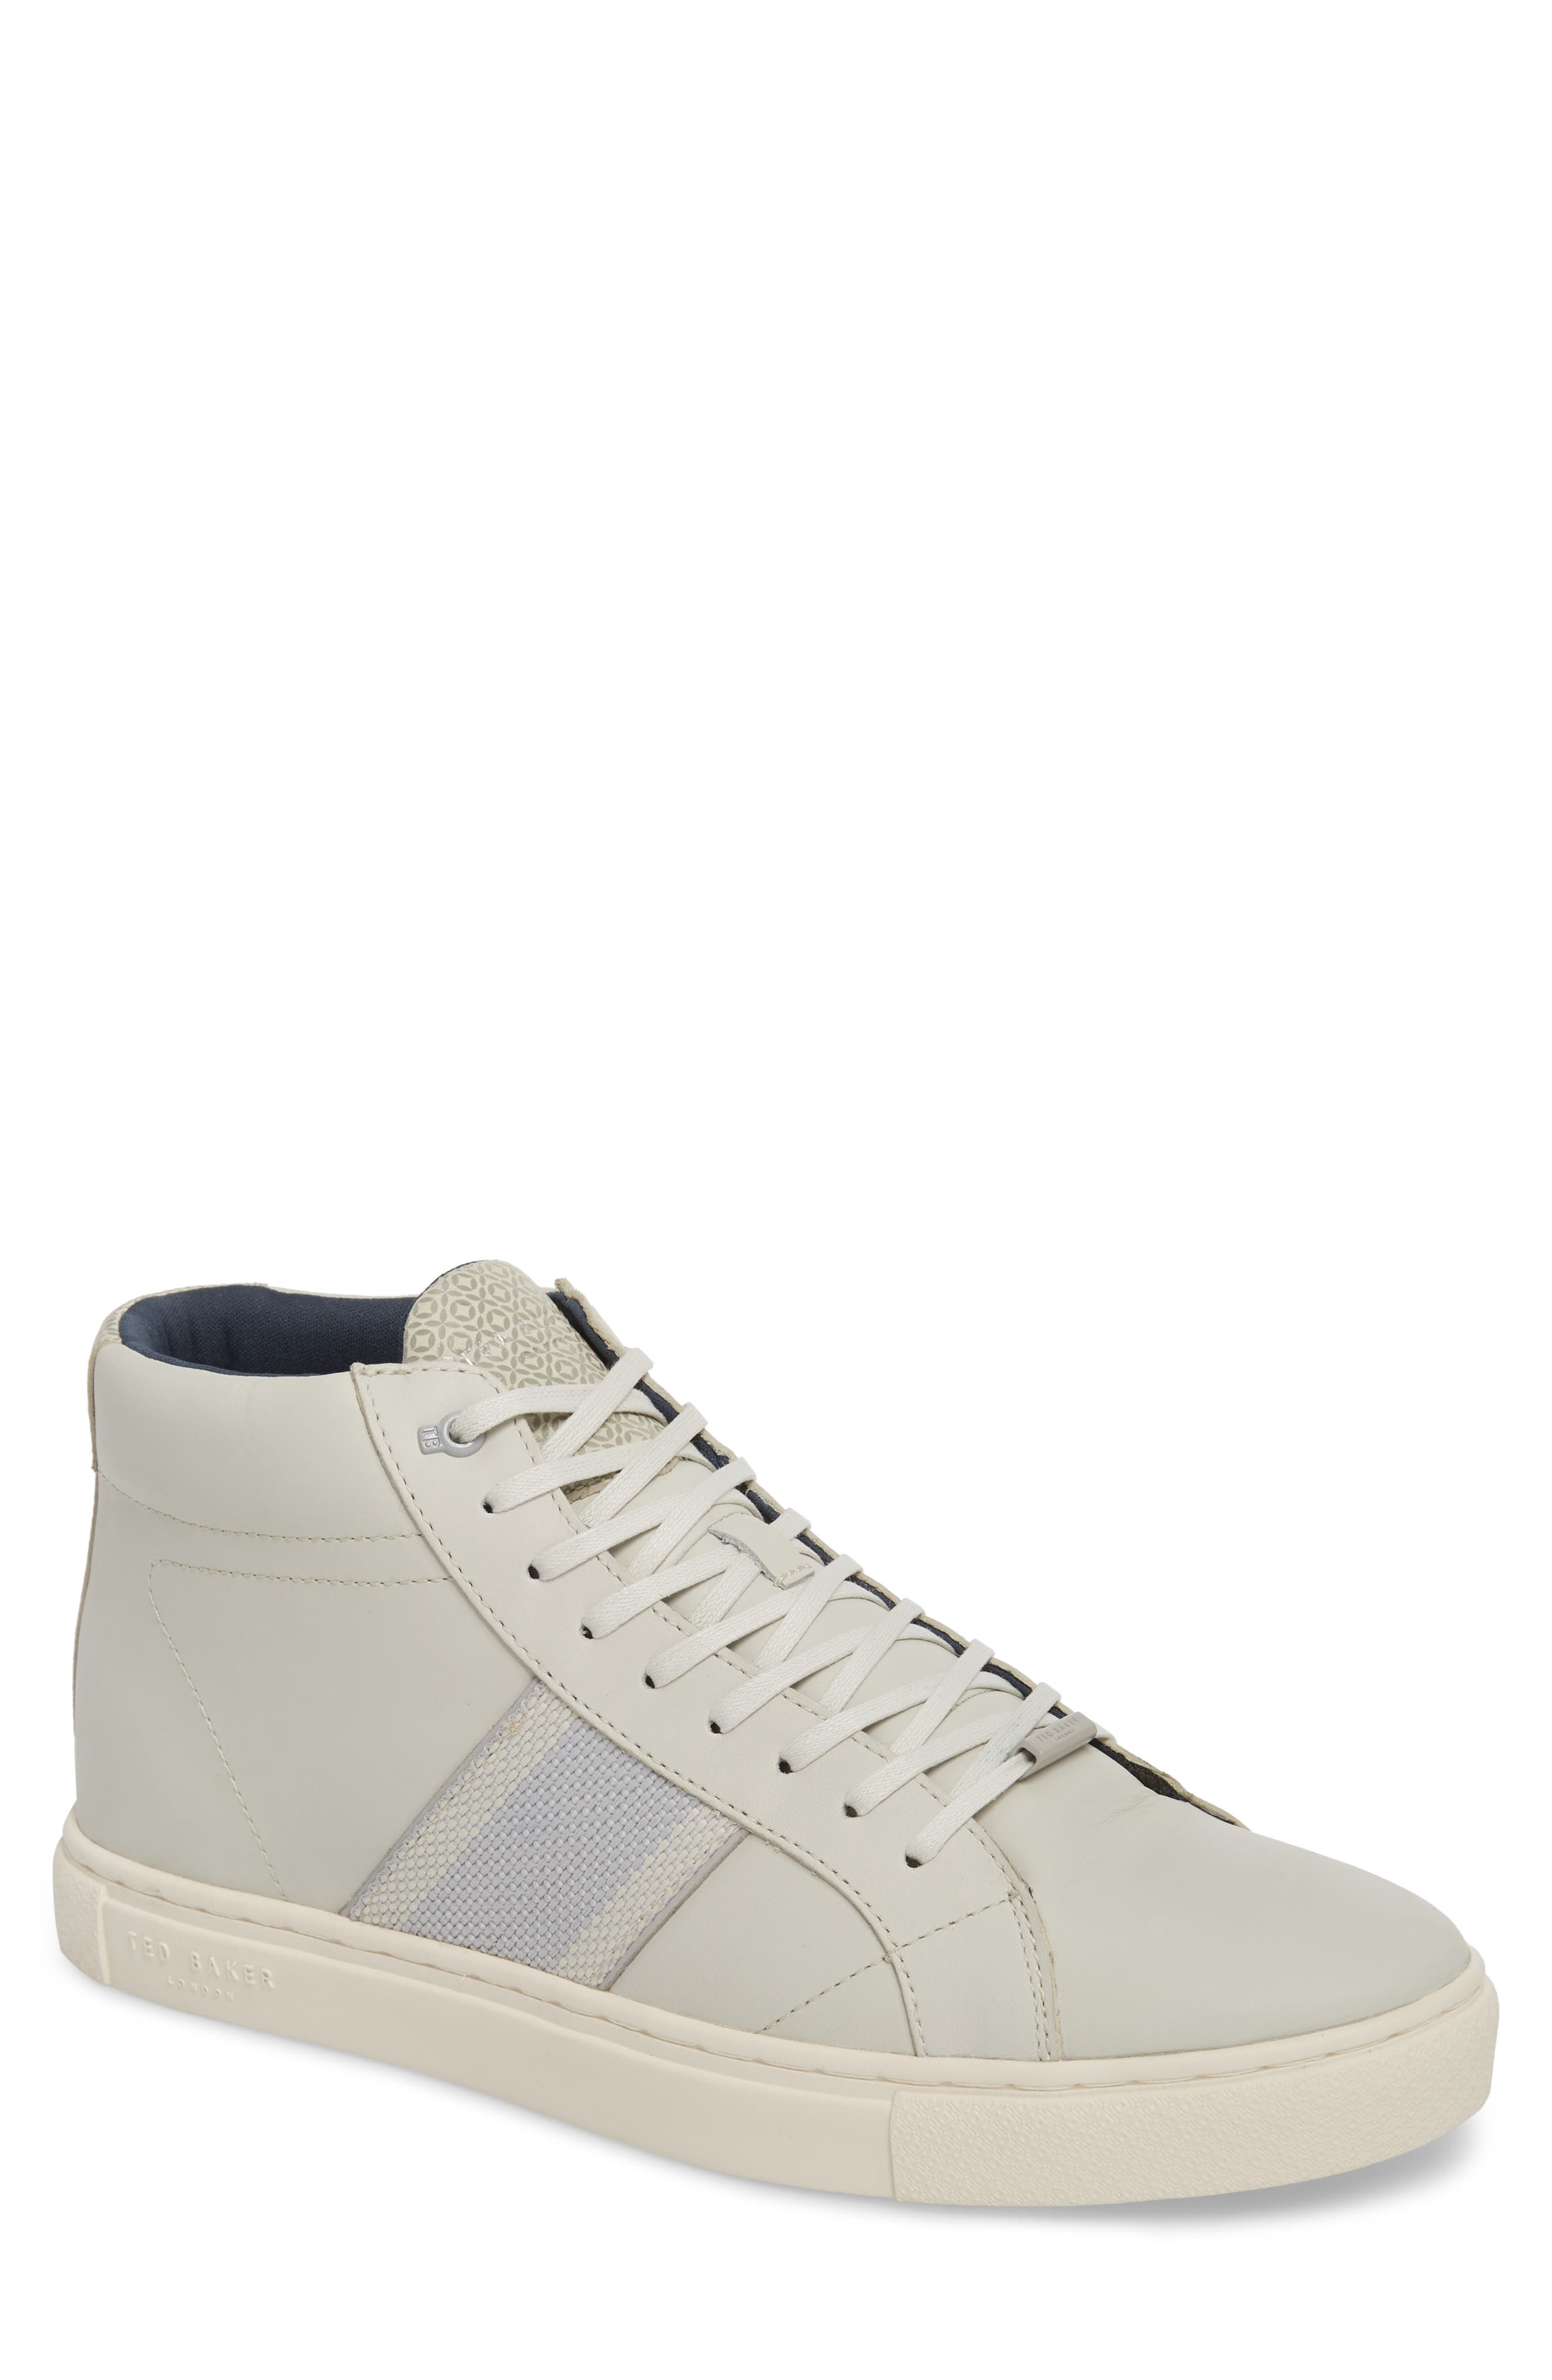 Cruuw High Top Sneaker,                             Main thumbnail 1, color,                             WHITE LEATHER